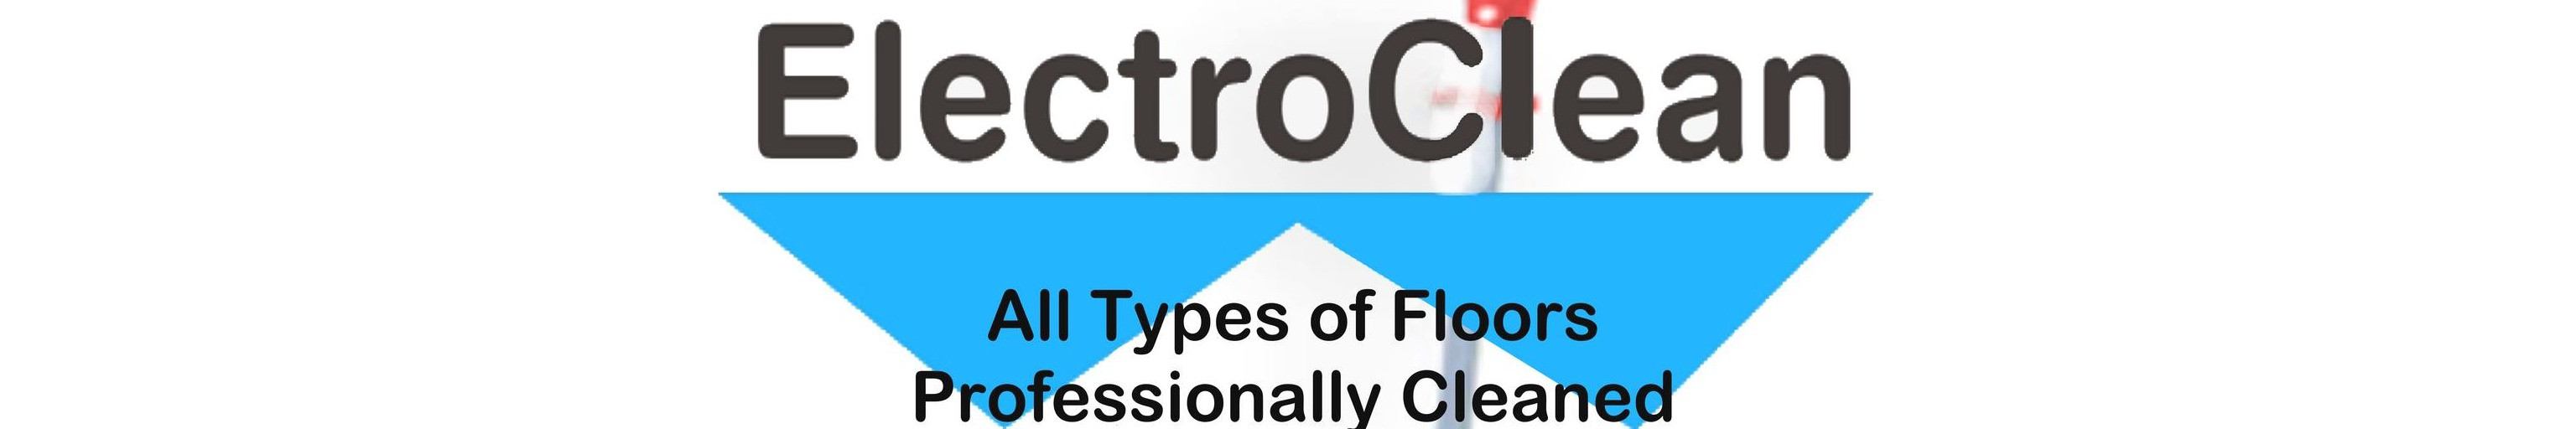 Electroclean floor cleaning and polishing Costa del Sol